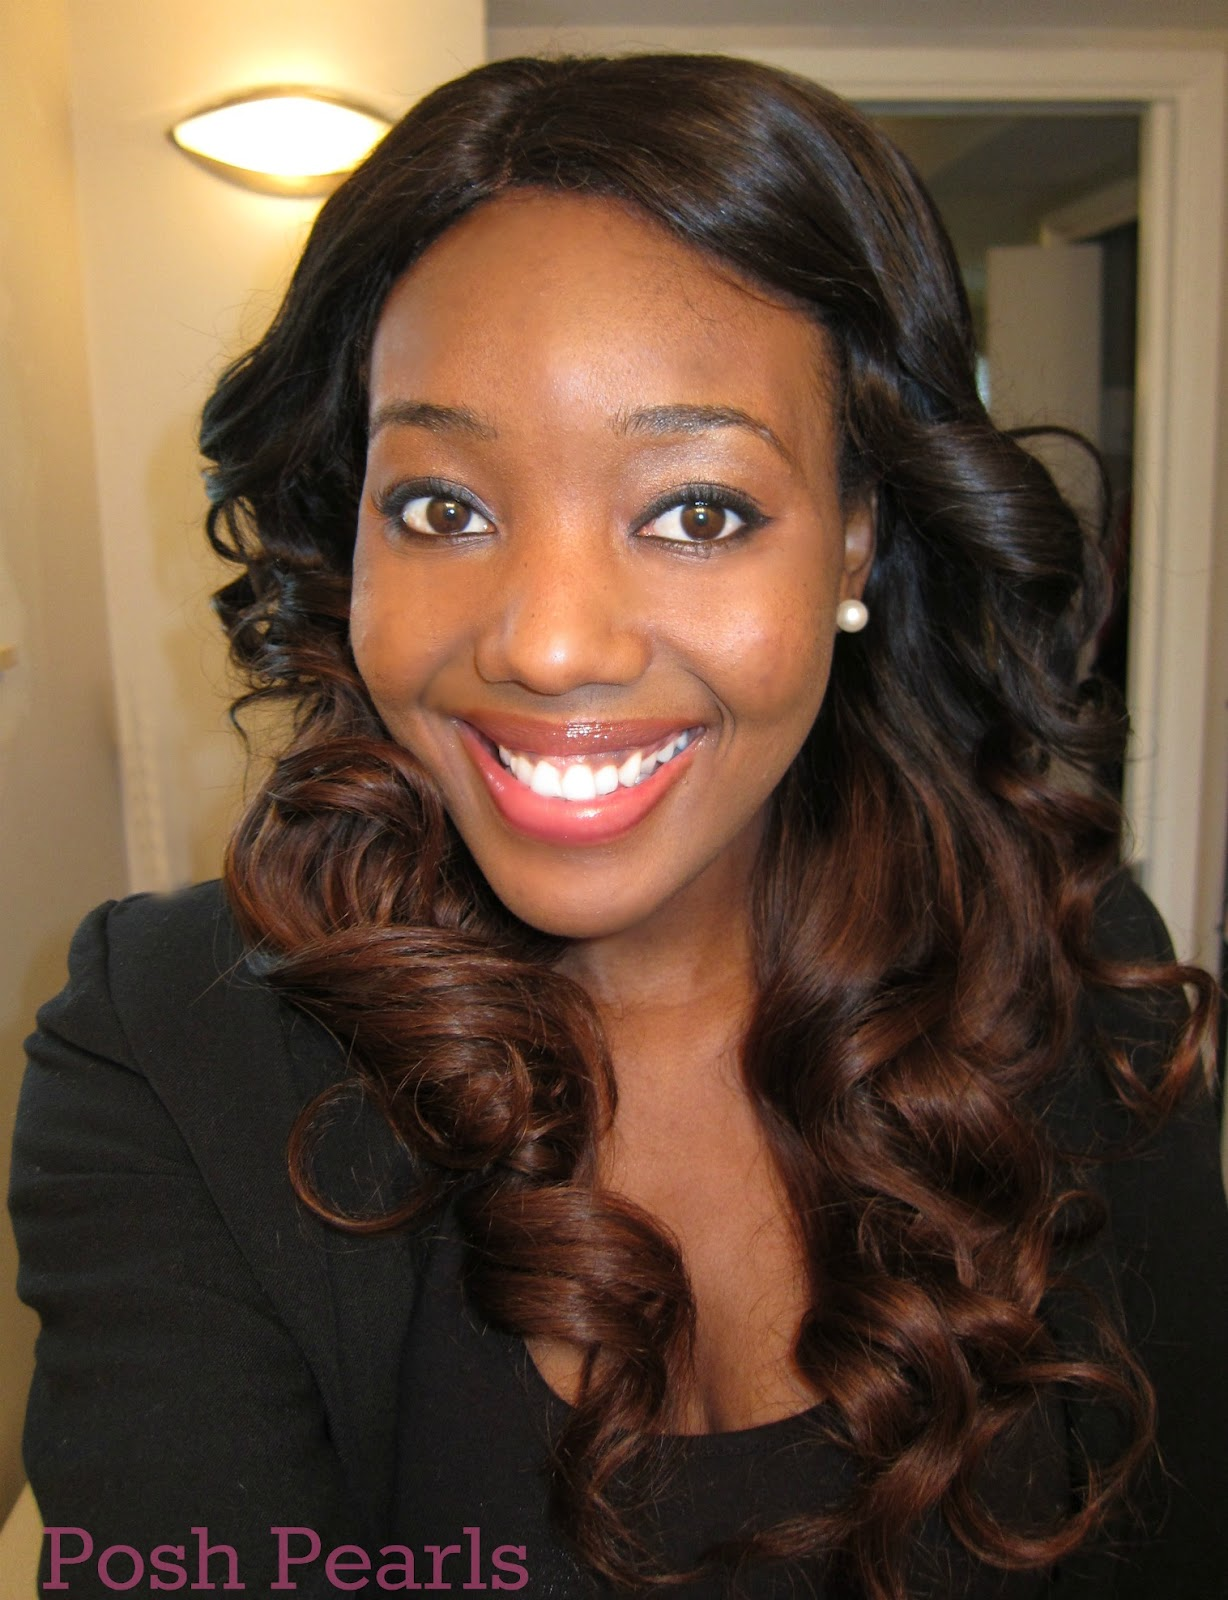 Posh Pearls: DIY: Ombre Hair Using Virgin Brazilian Hair Extensions